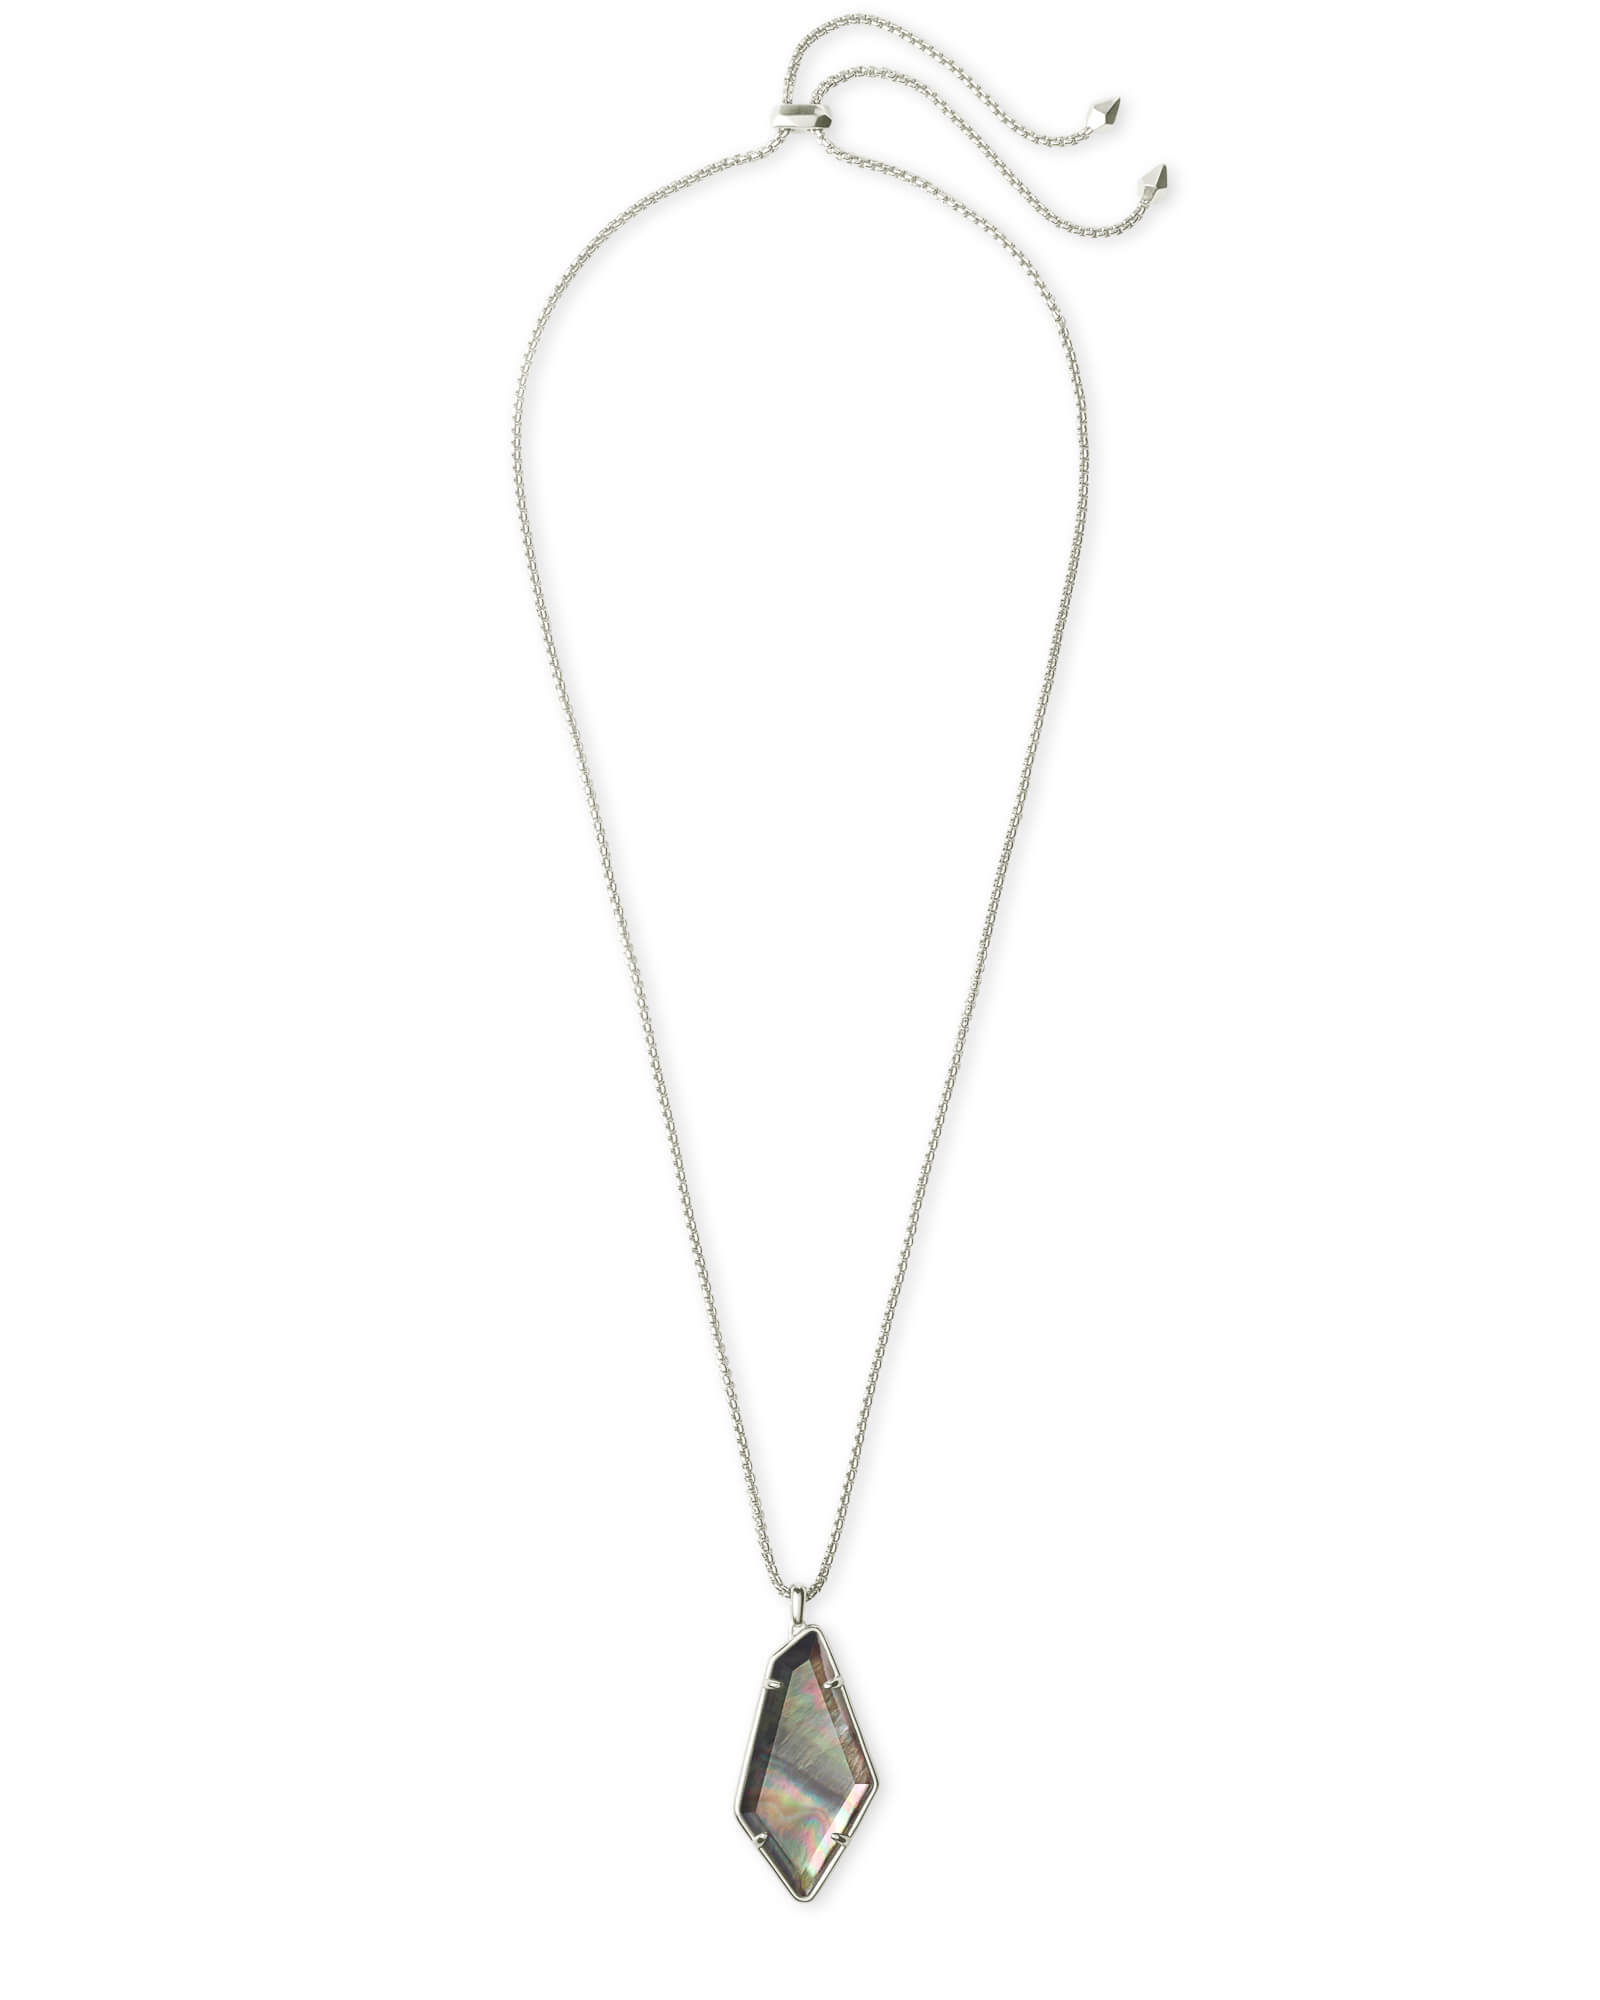 Lilith Bright Silver Long Pendant Necklace in Black Mother-of-Pearl